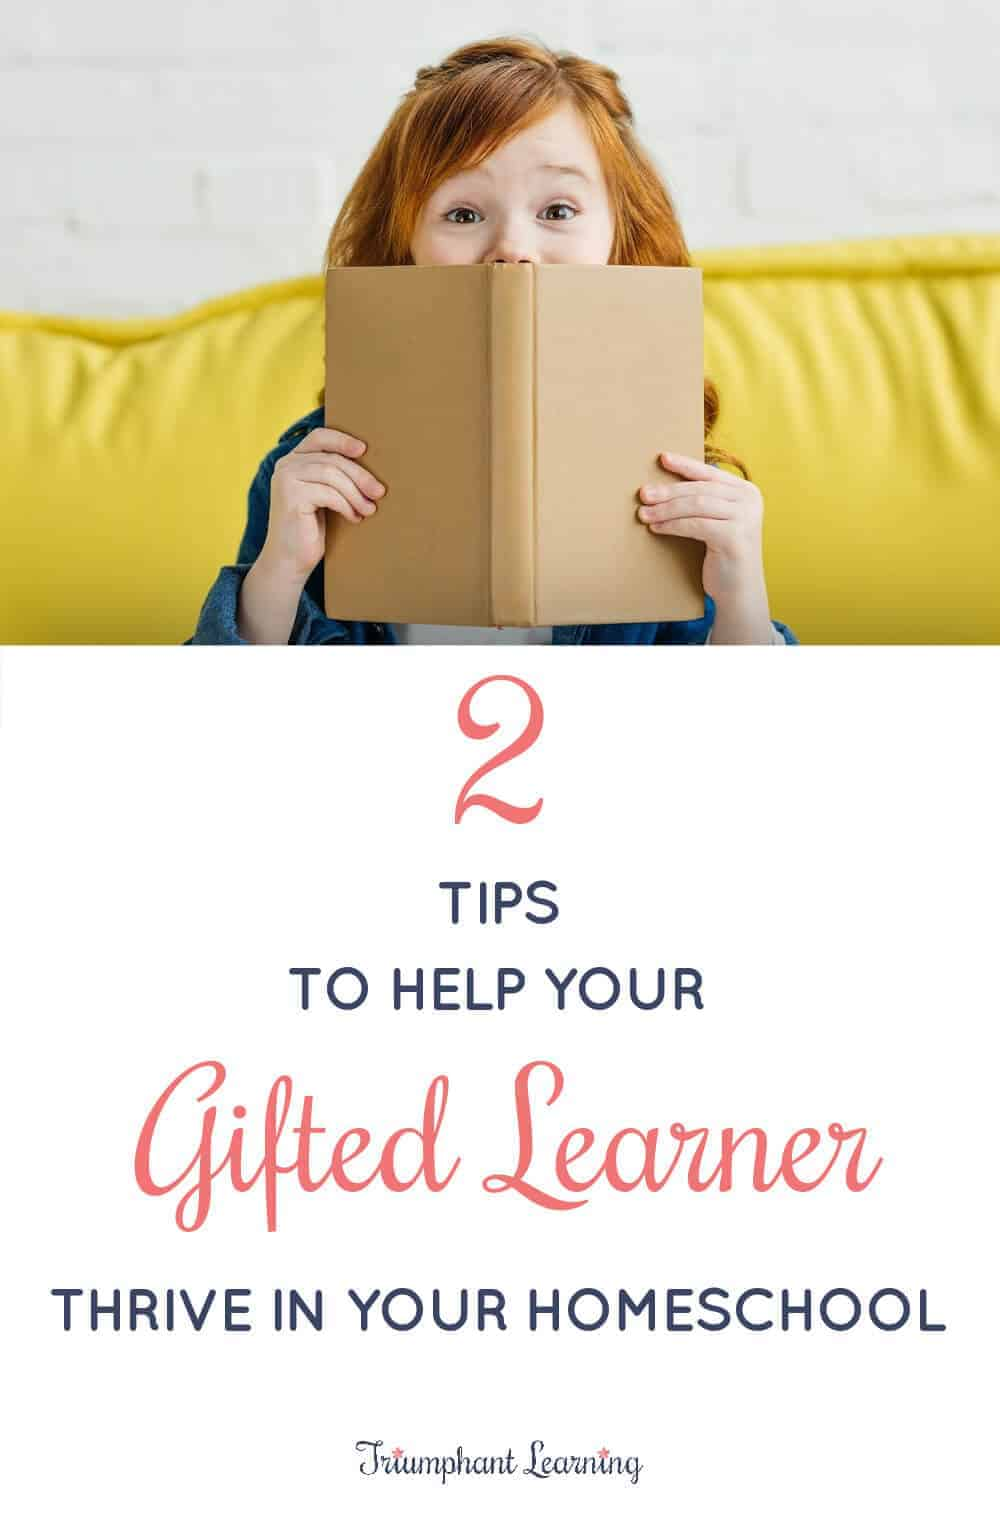 Many gifted students thrive in a homeschool setting. Use these tips to help you and your gifted learner thrive without getting overwhelmed. via @TriLearning